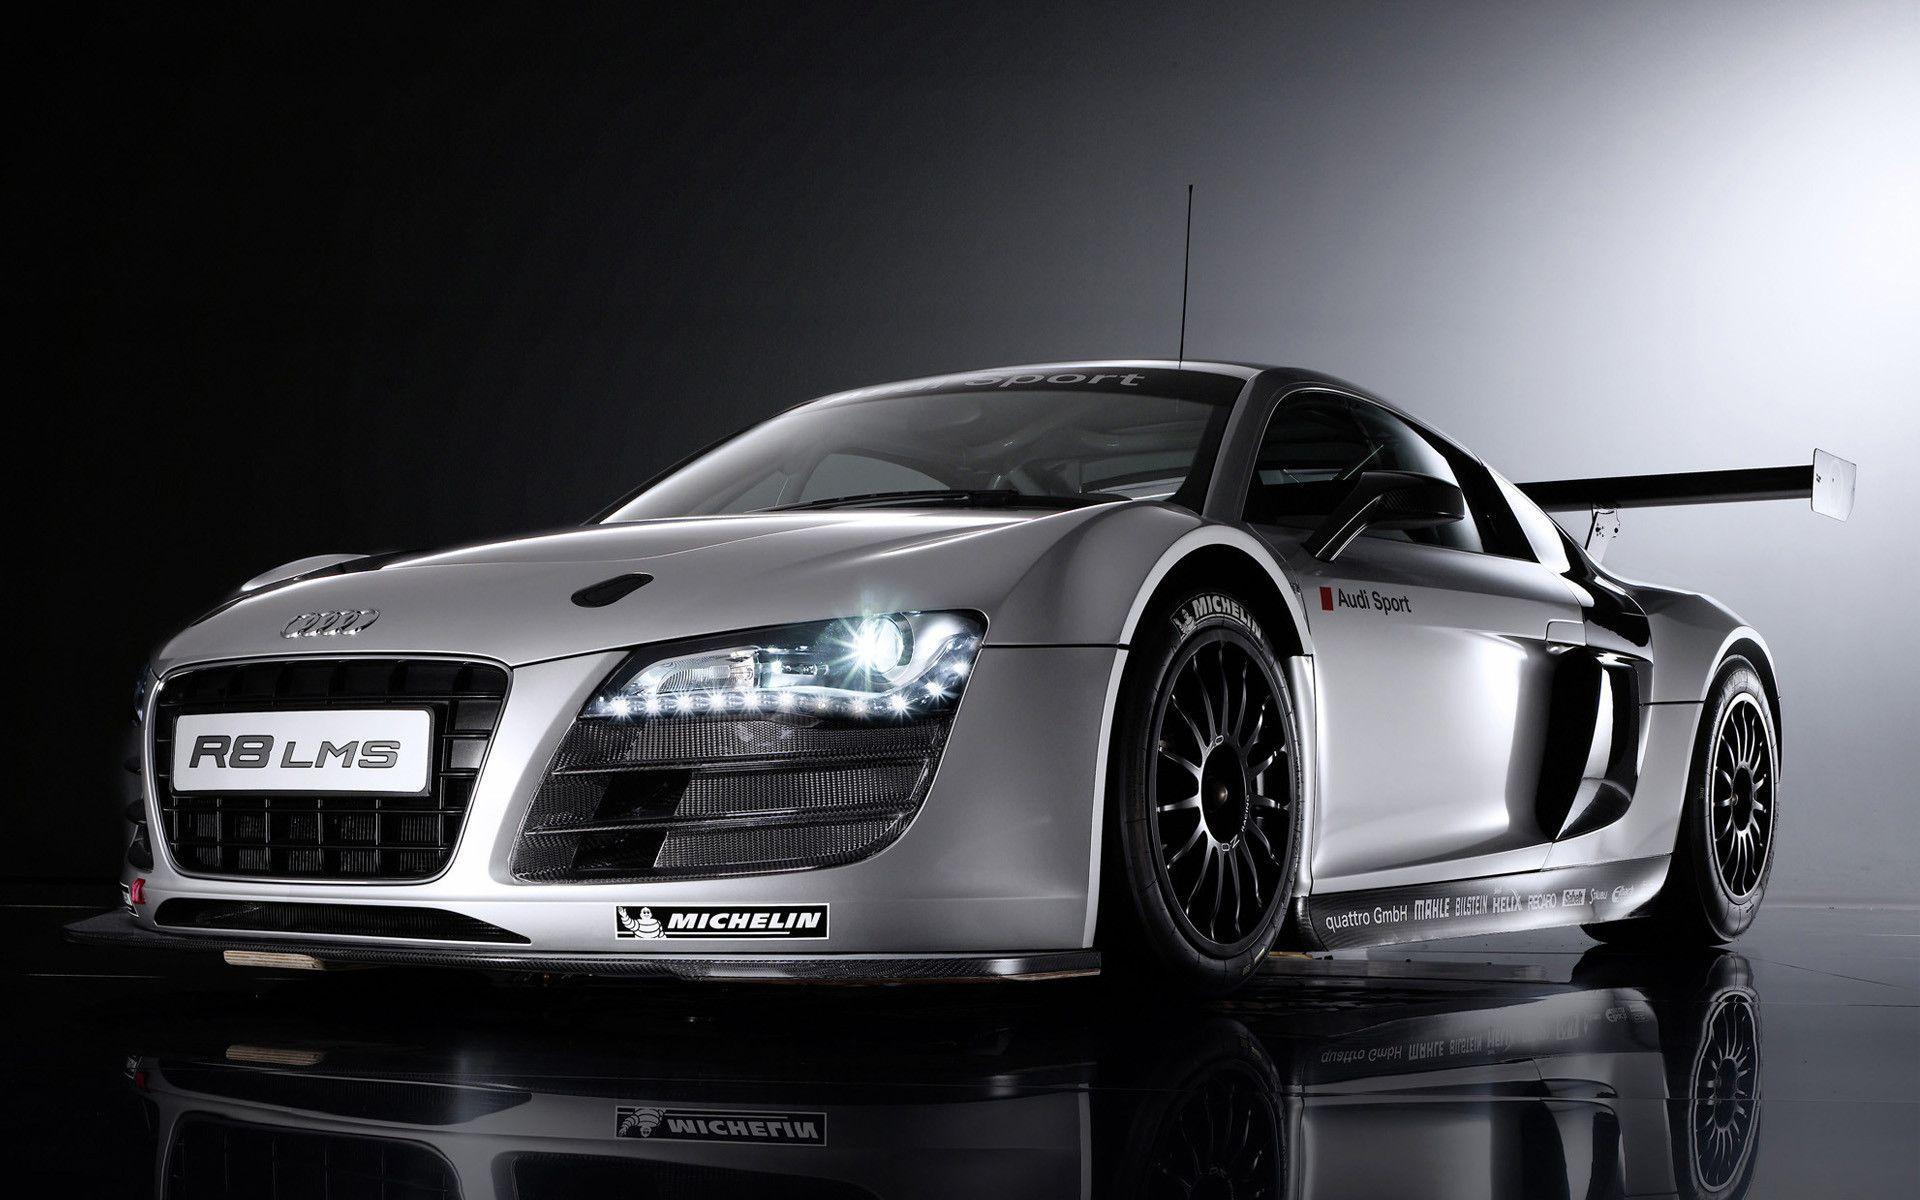 Audi R8 LMS Front View Backgrounds 8329 Wallpapers WallscreenHD